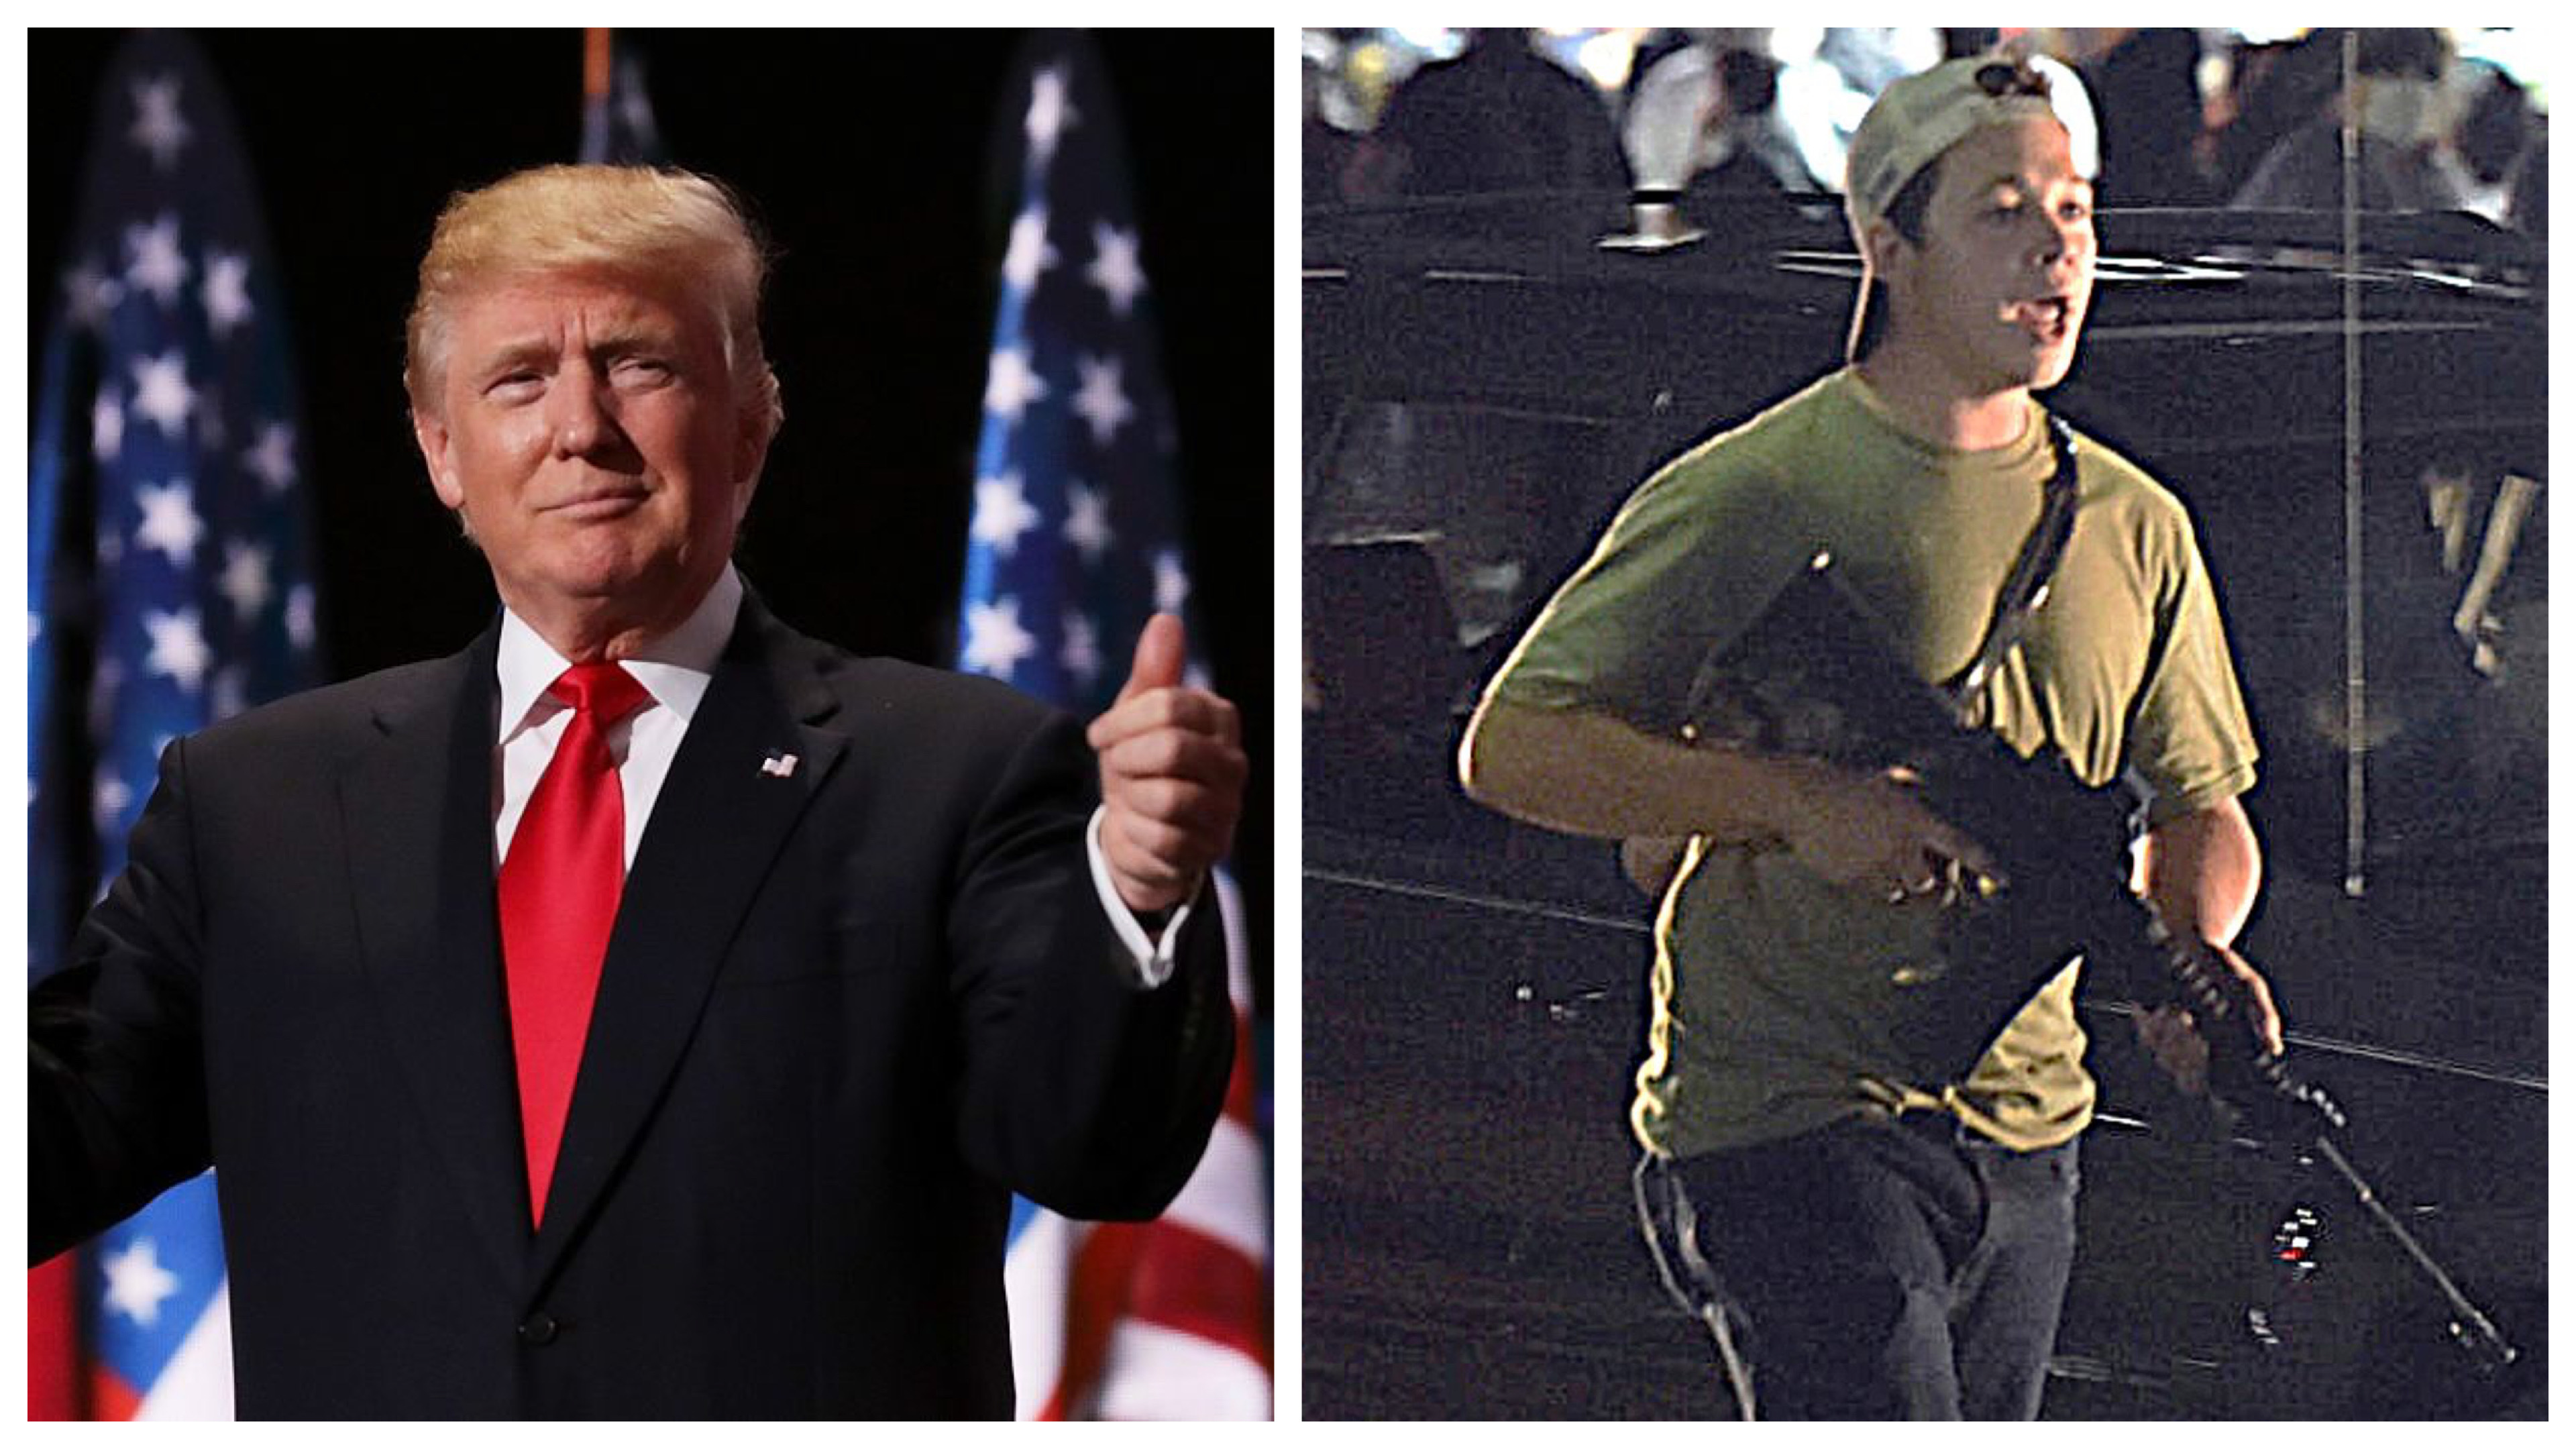 Donald Trump and Kyle Rittenhouse